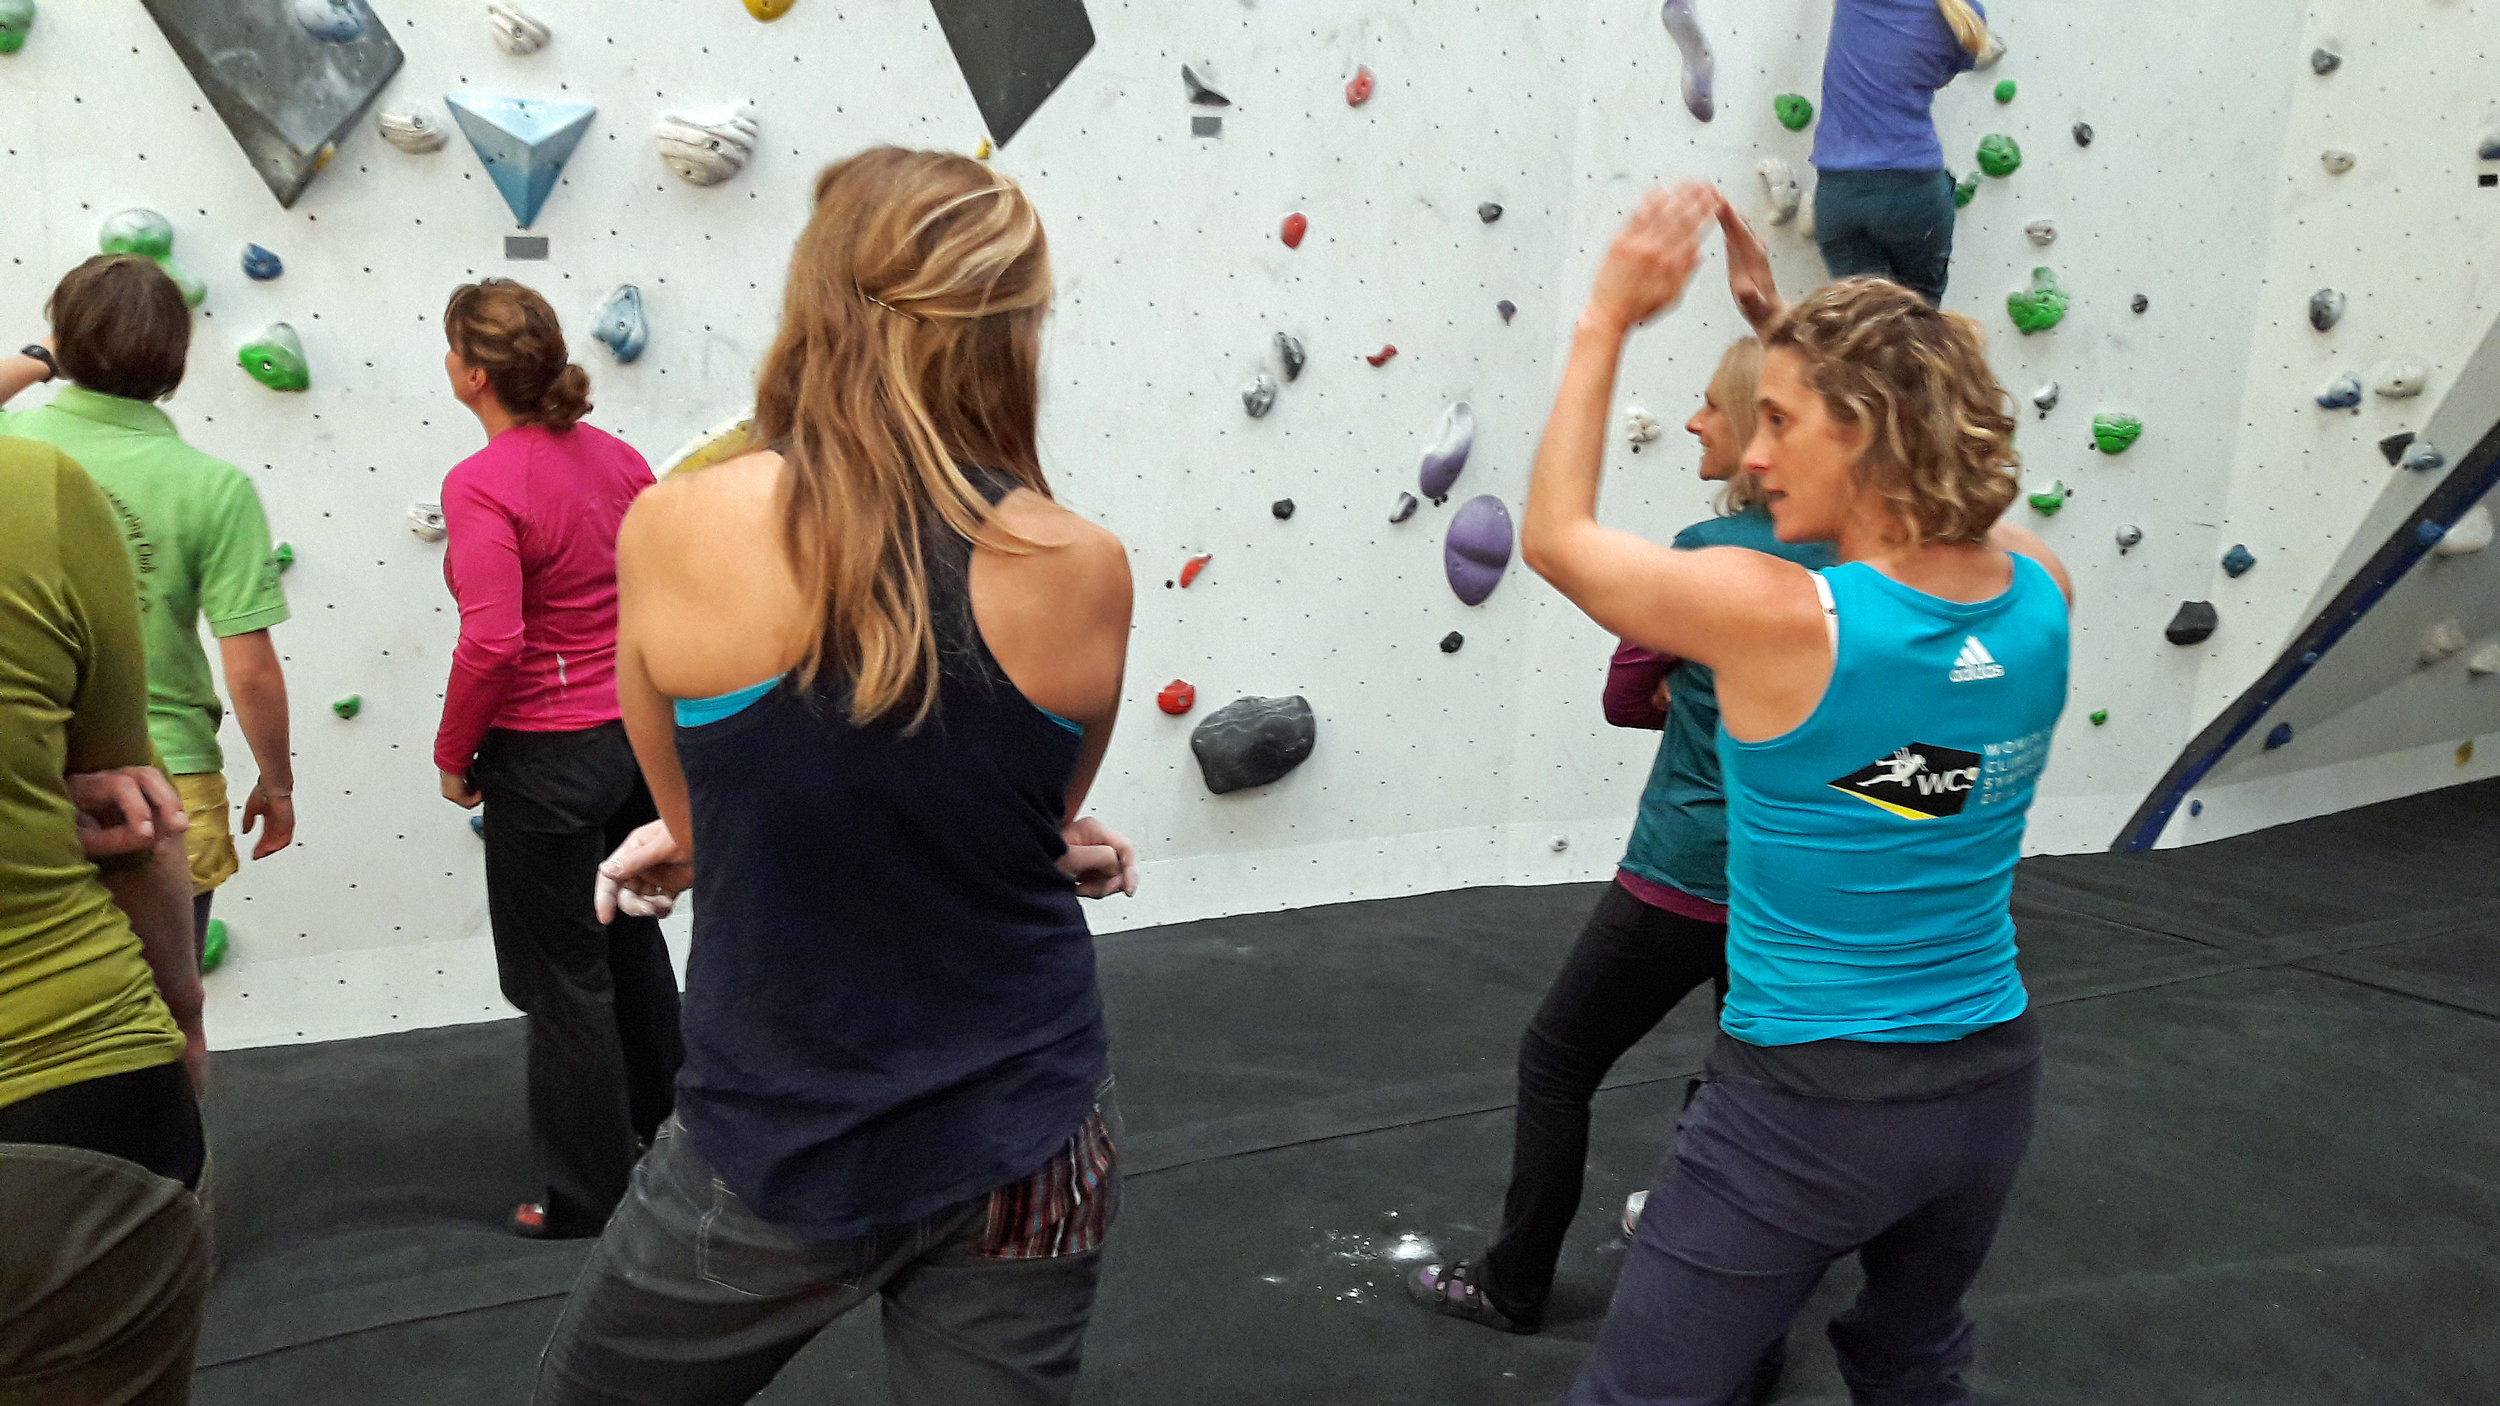 Coaching at the Women's Climbing Symposium